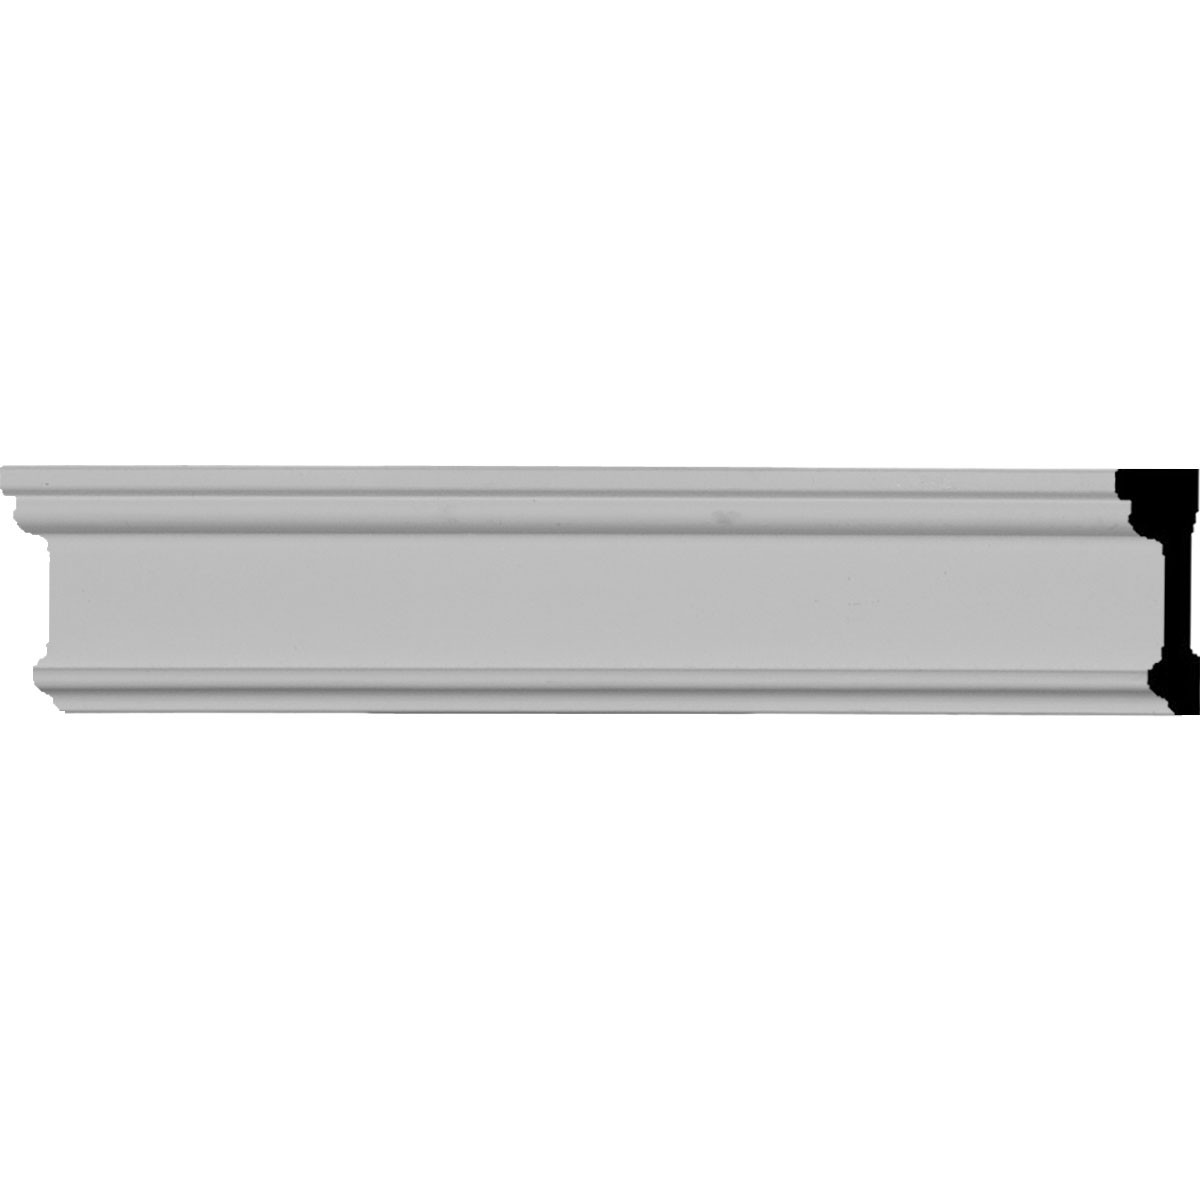 """EM-PIR01X00BP - 1 3/4""""H x 1/2""""P x 96""""L Pierced Moulding Backplate, fits Pierced Moulding Heights 1"""" and under"""